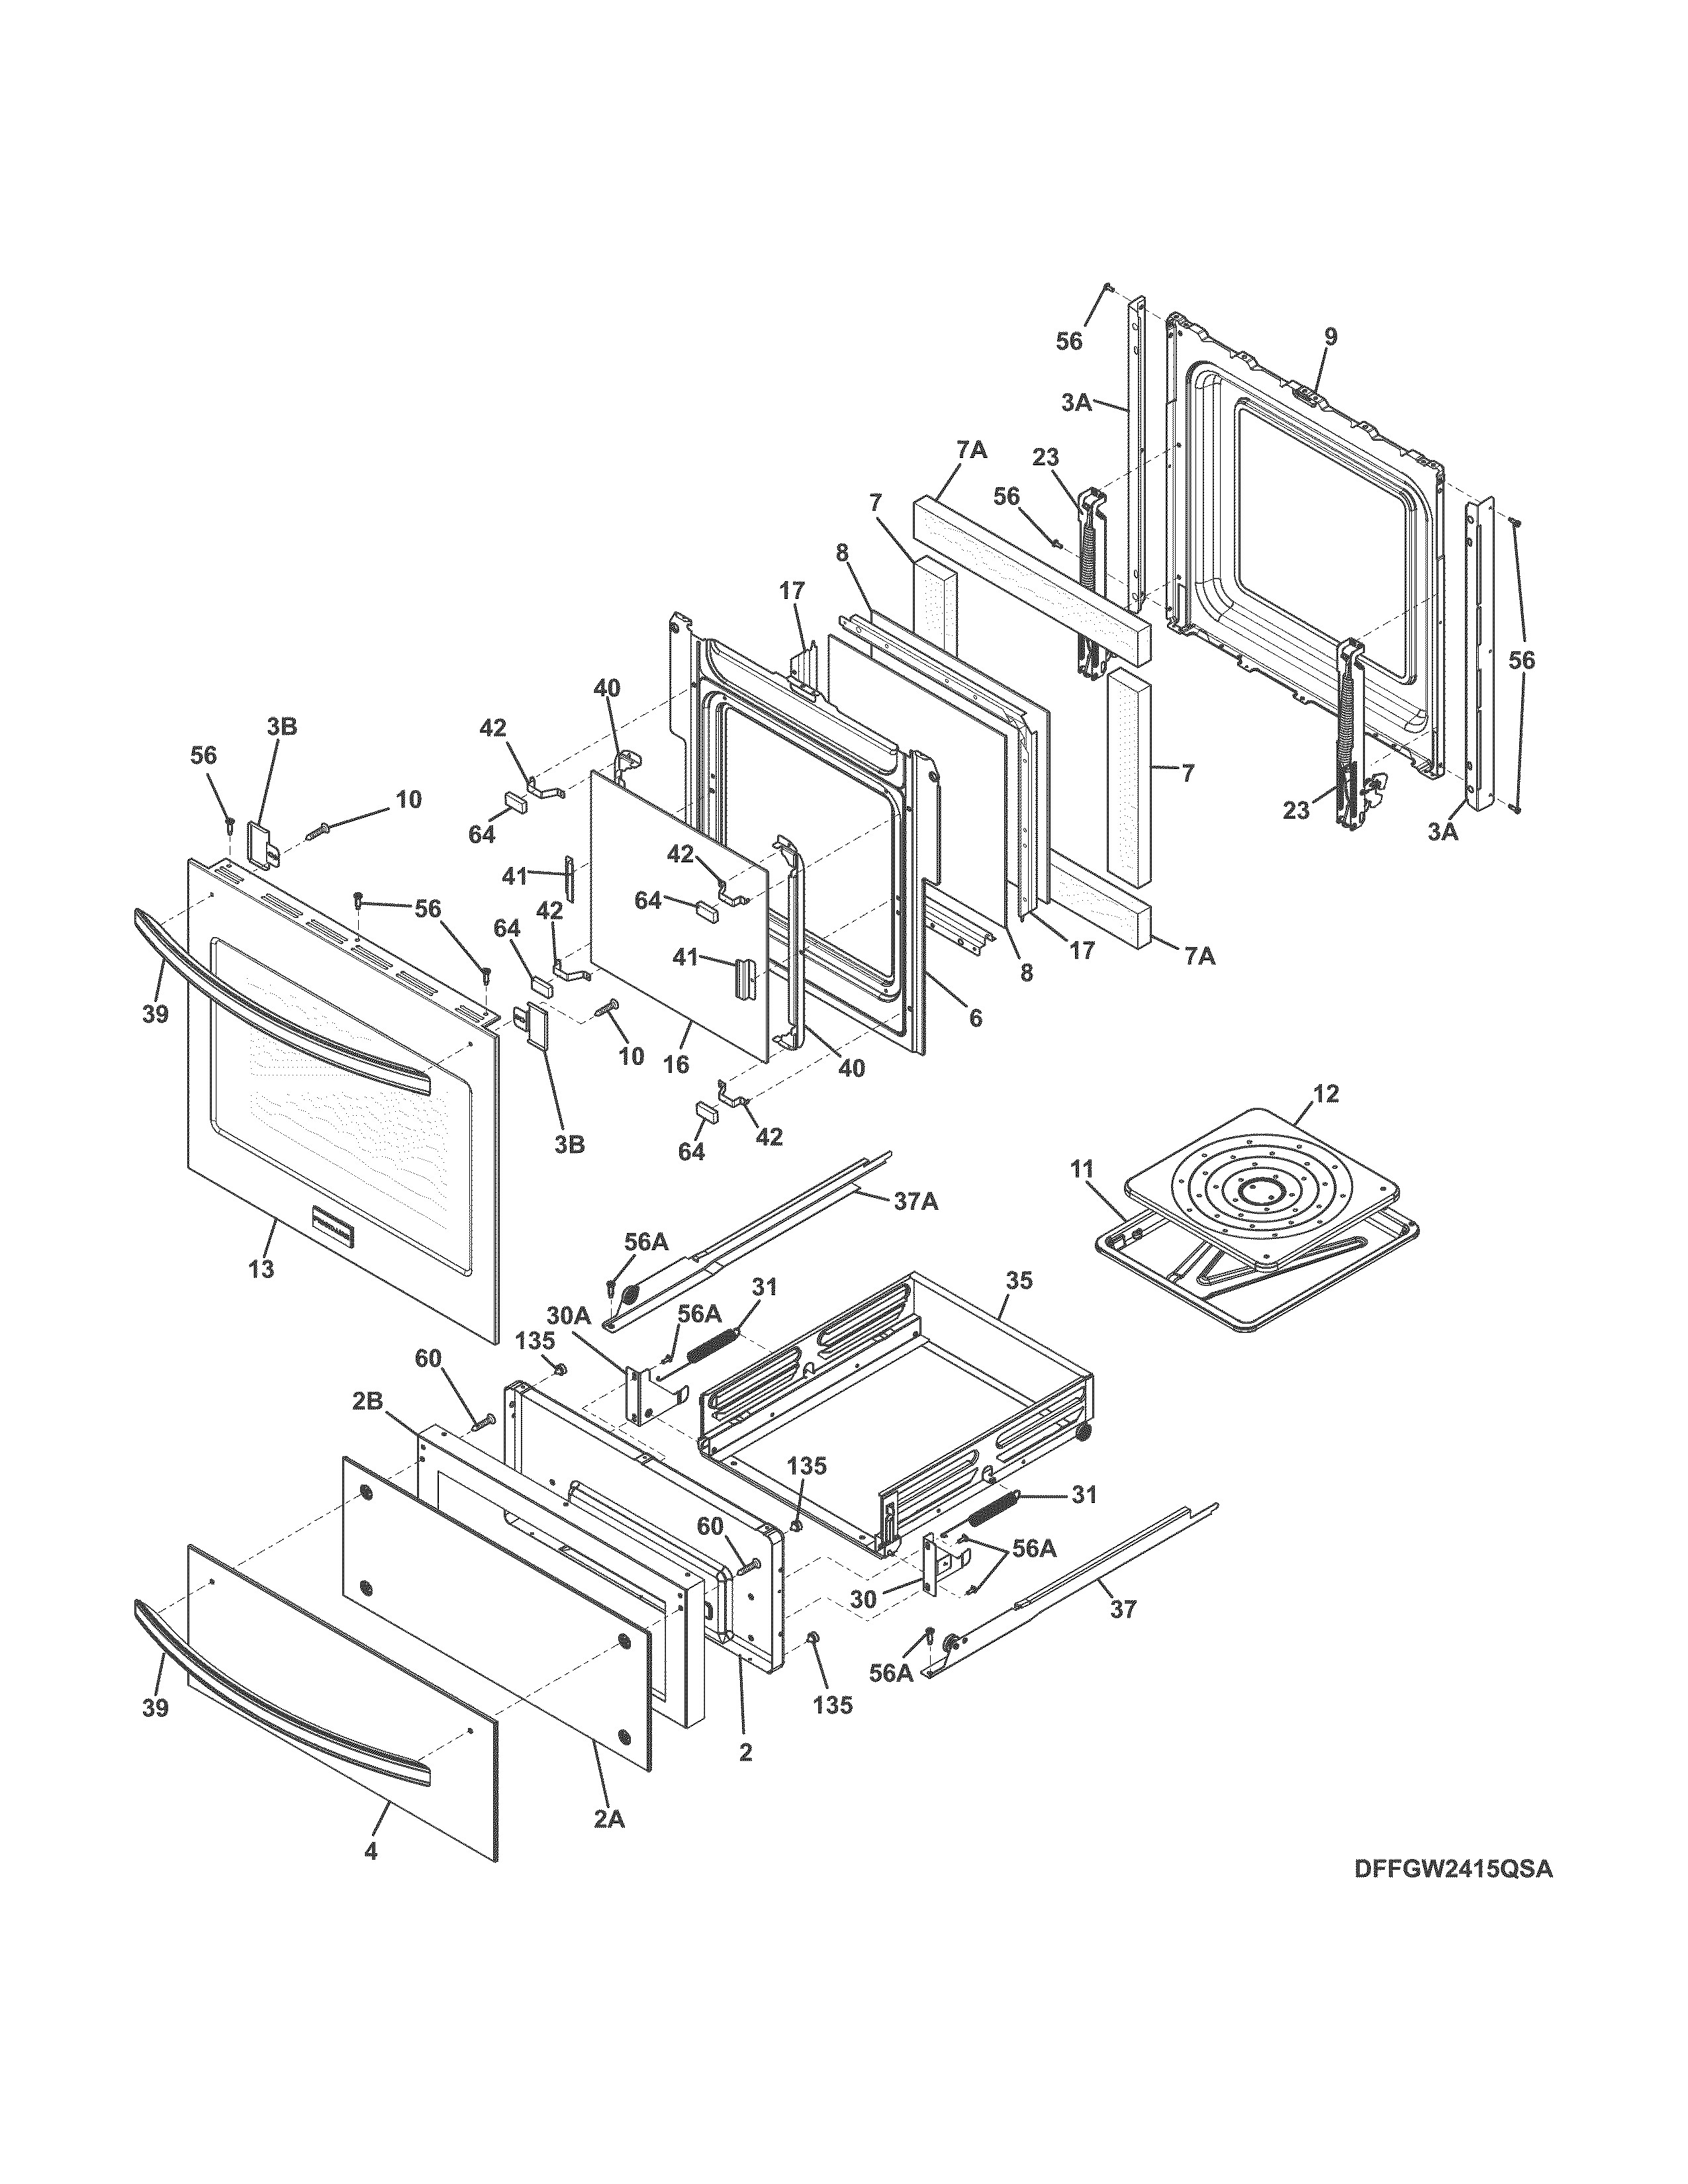 Frigidaire Stove Parts Diagram Looking for Frigidaire Model Ffgw2415qsa Gas Wall Oven Repair Of Frigidaire Stove Parts Diagram Frigidaire Door Parts & 03 Freezer Door Parts for Frigidaire